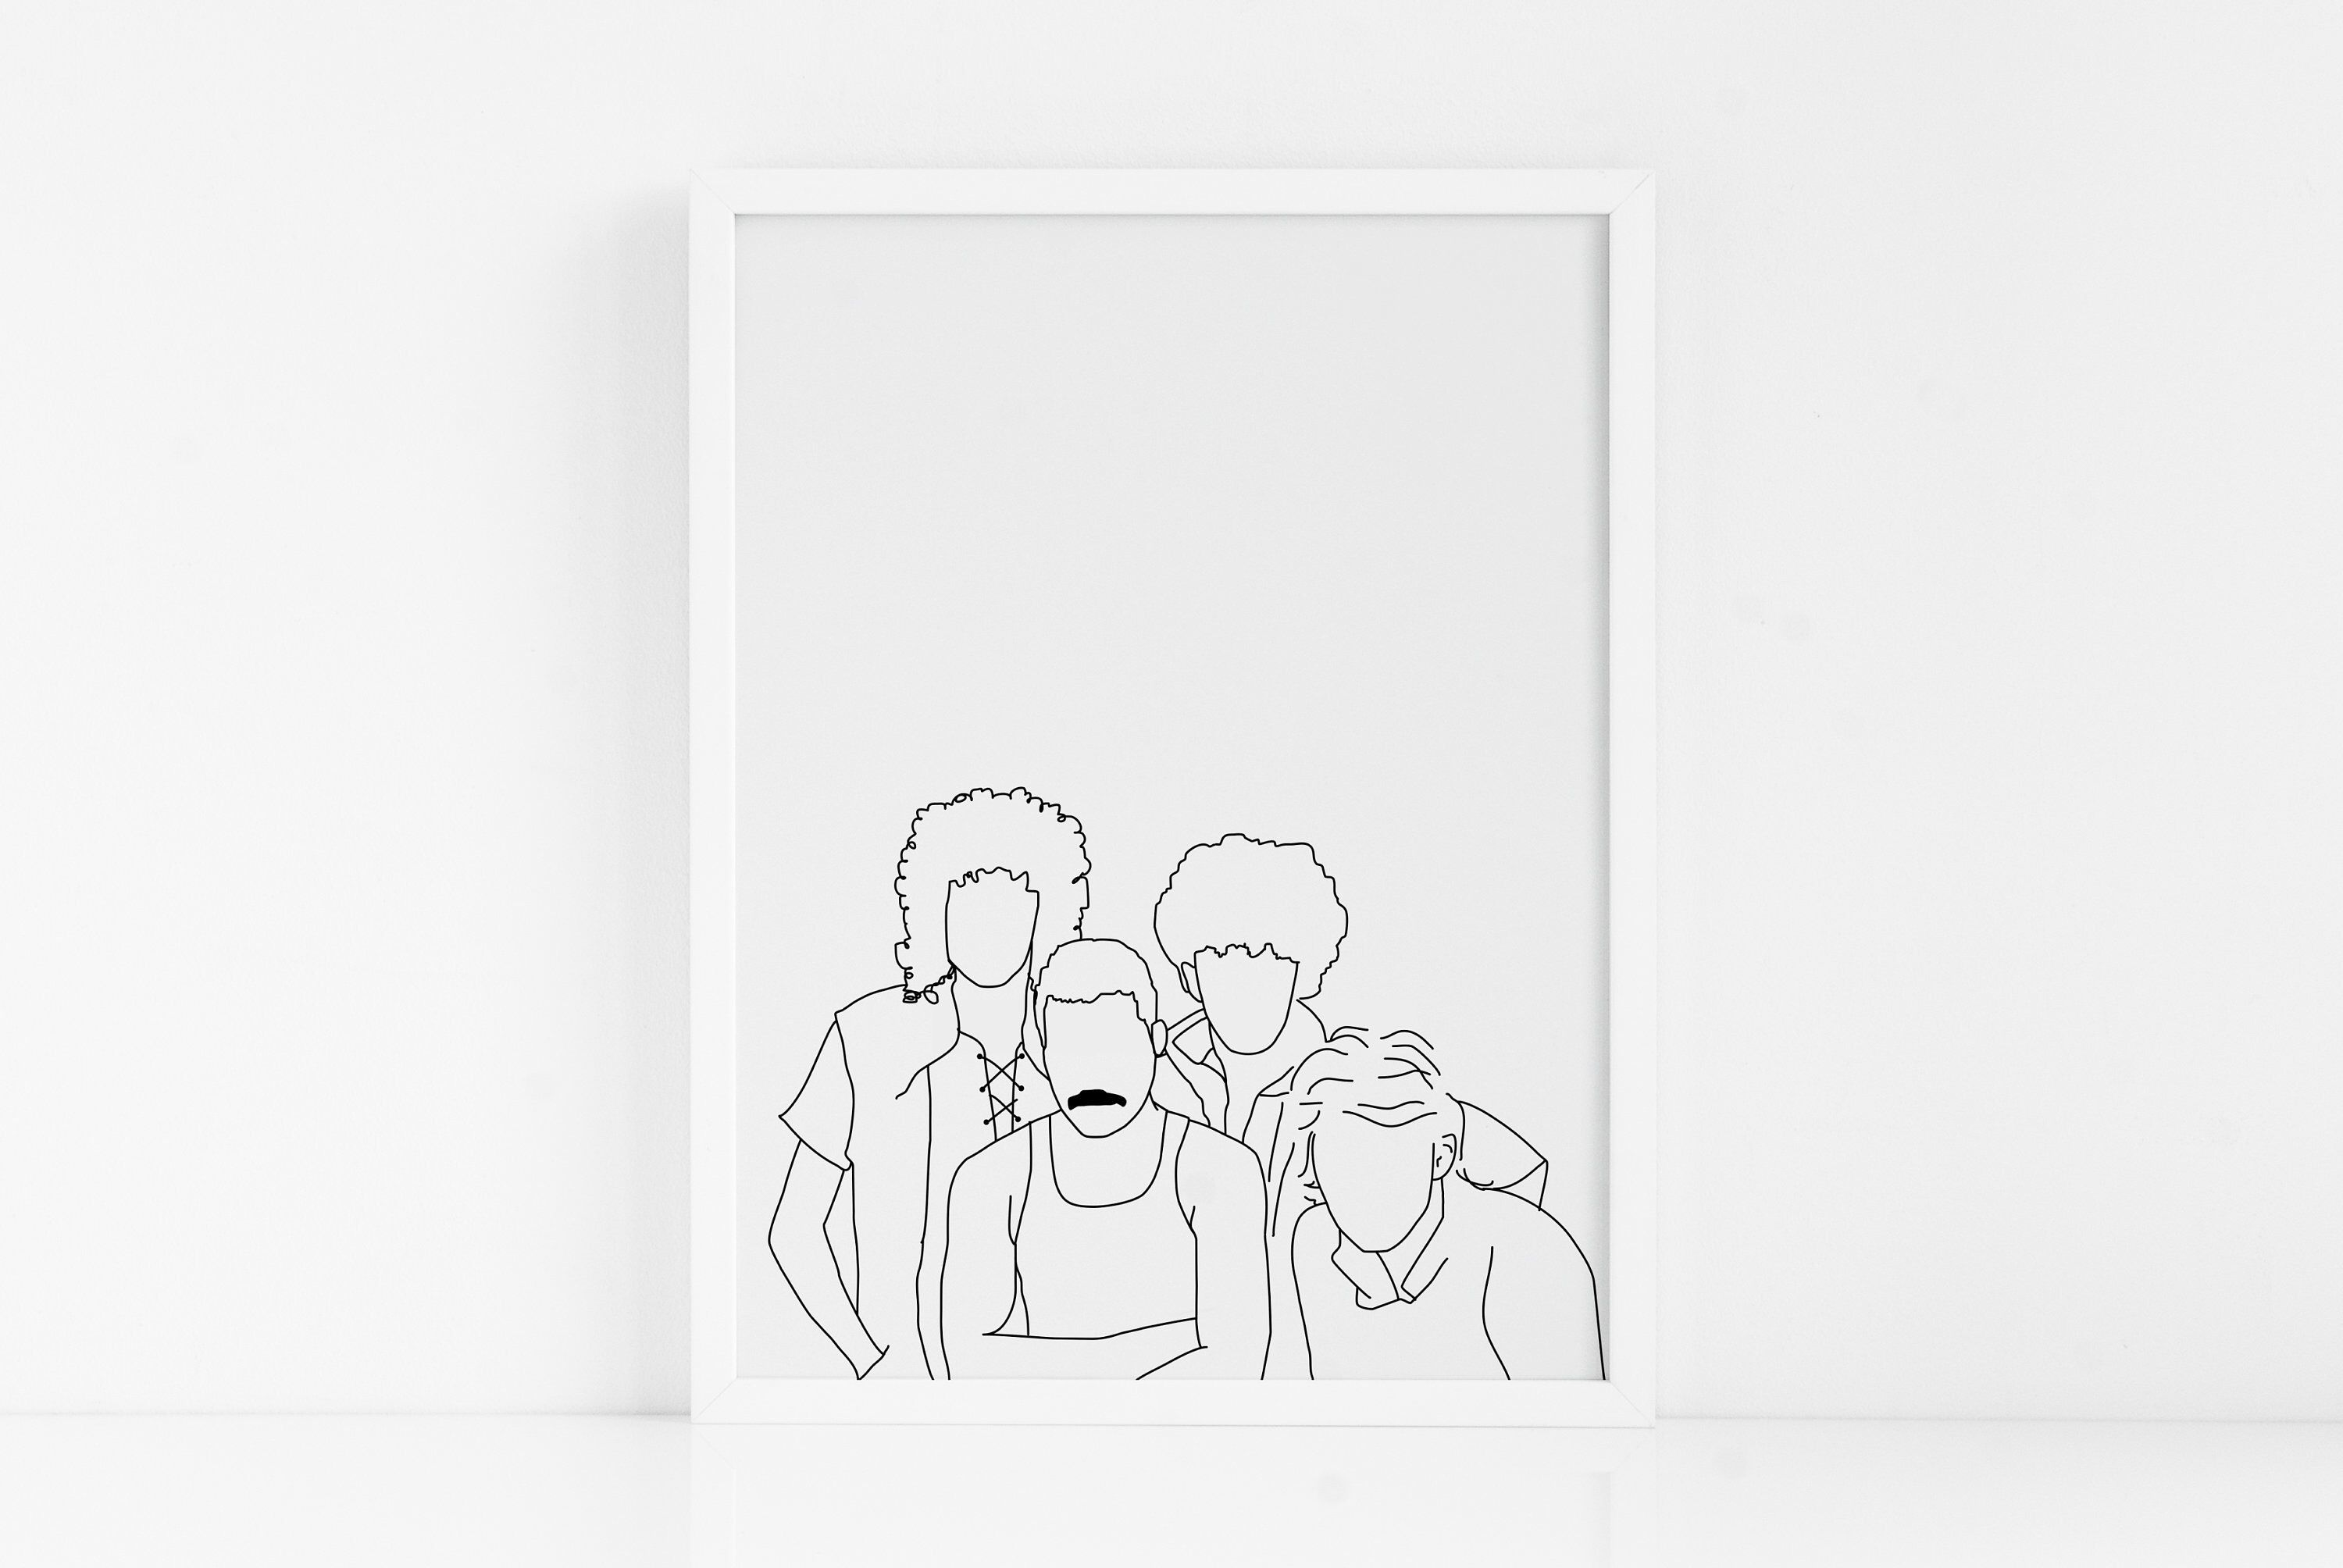 Queen Band FRAMED ART|Line Drawing of Queen|Freddie Mercury Art Print|Queen Poster|Gift for Him|Gift for Her|Unique Gift|Don't Stop Me Now